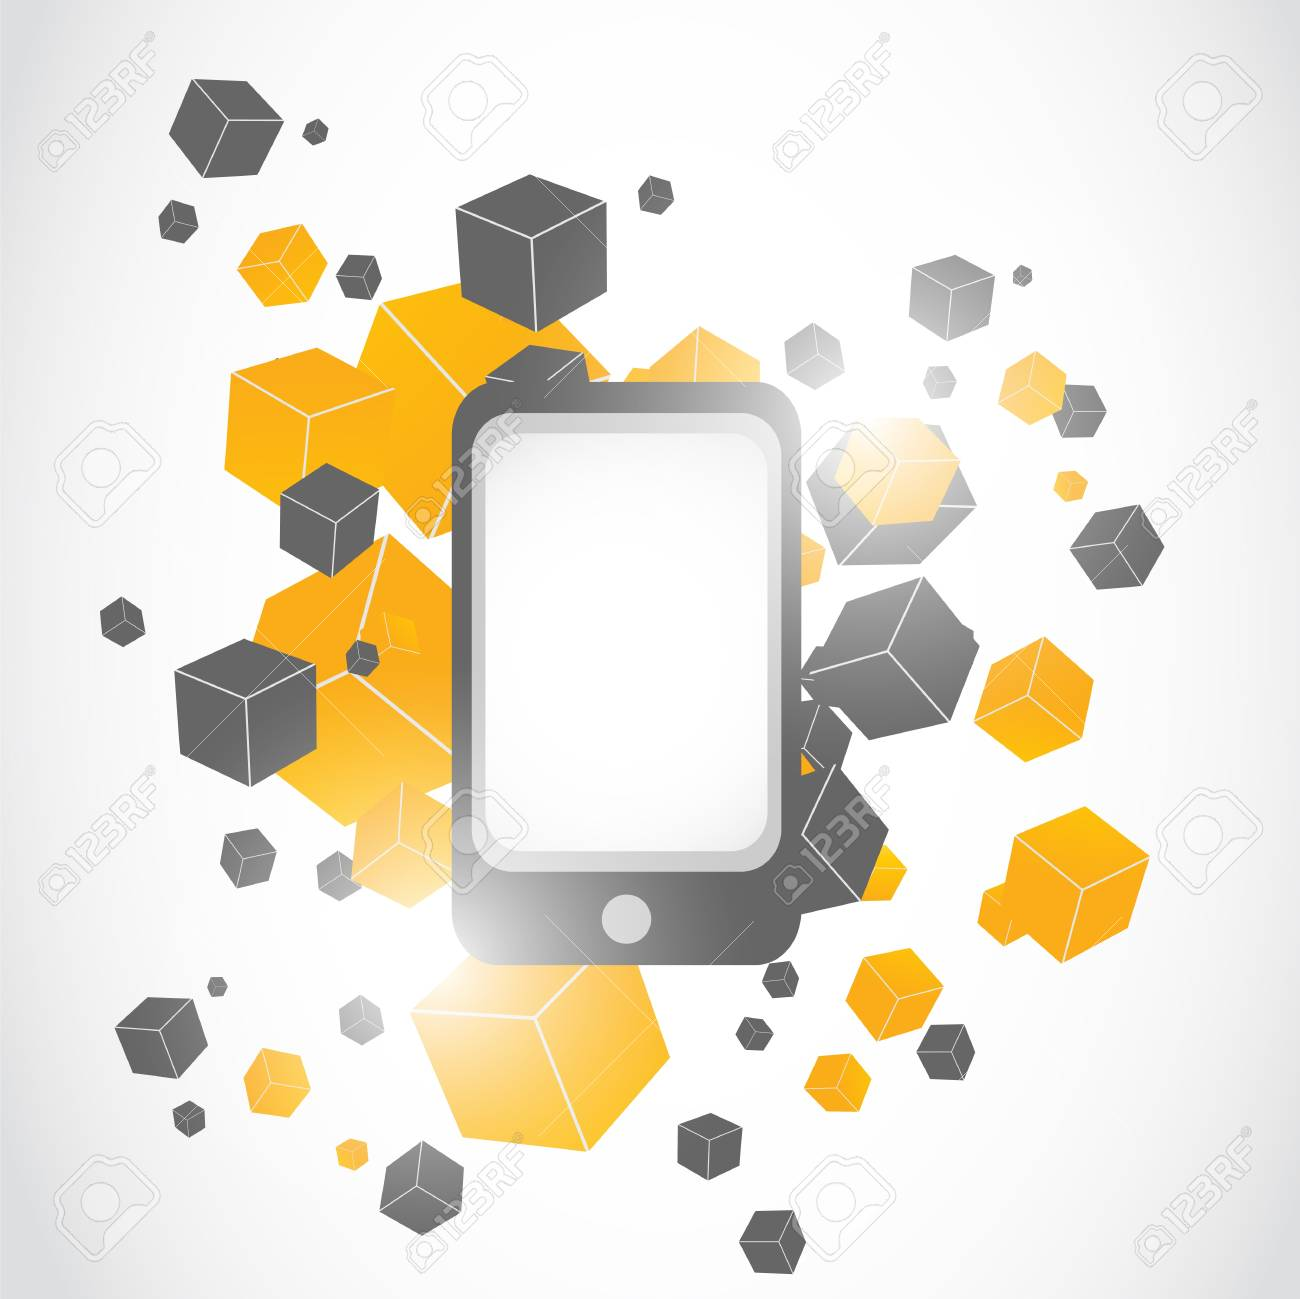 abstract modern smartphone illustration background Stock Vector - 17296529